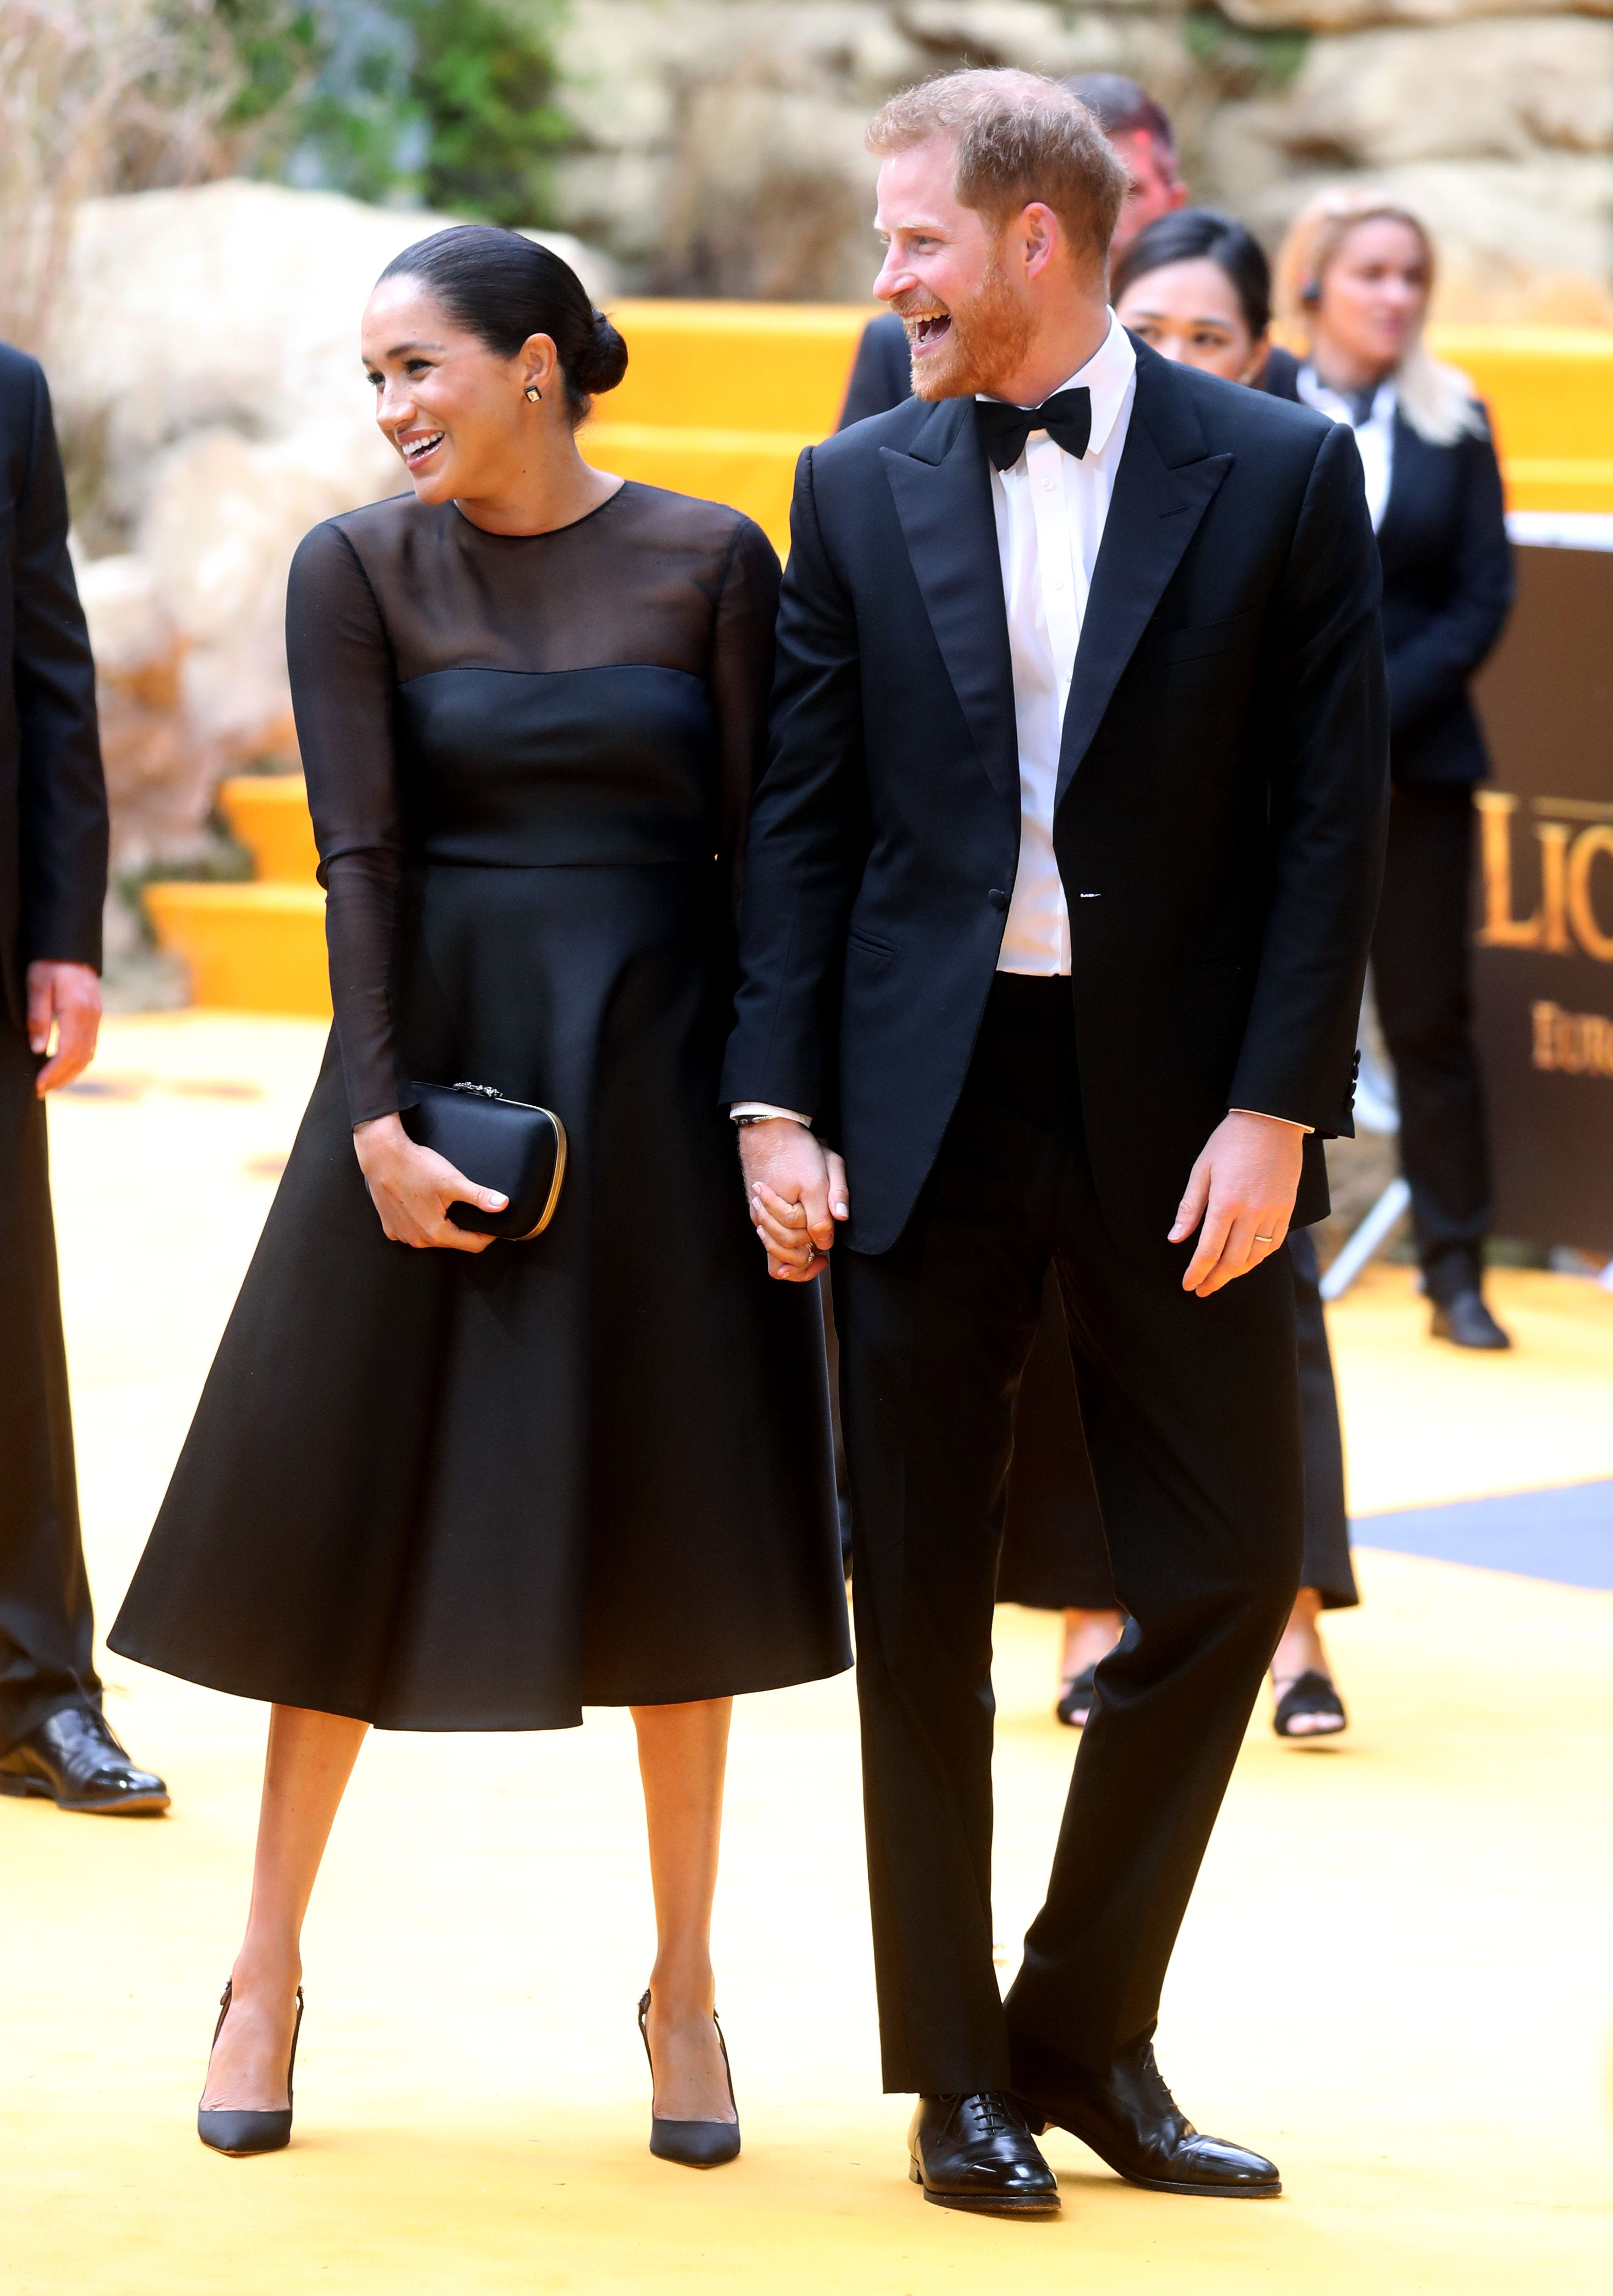 The Duke and Duchess of Sussex attend The Lion King London premiere